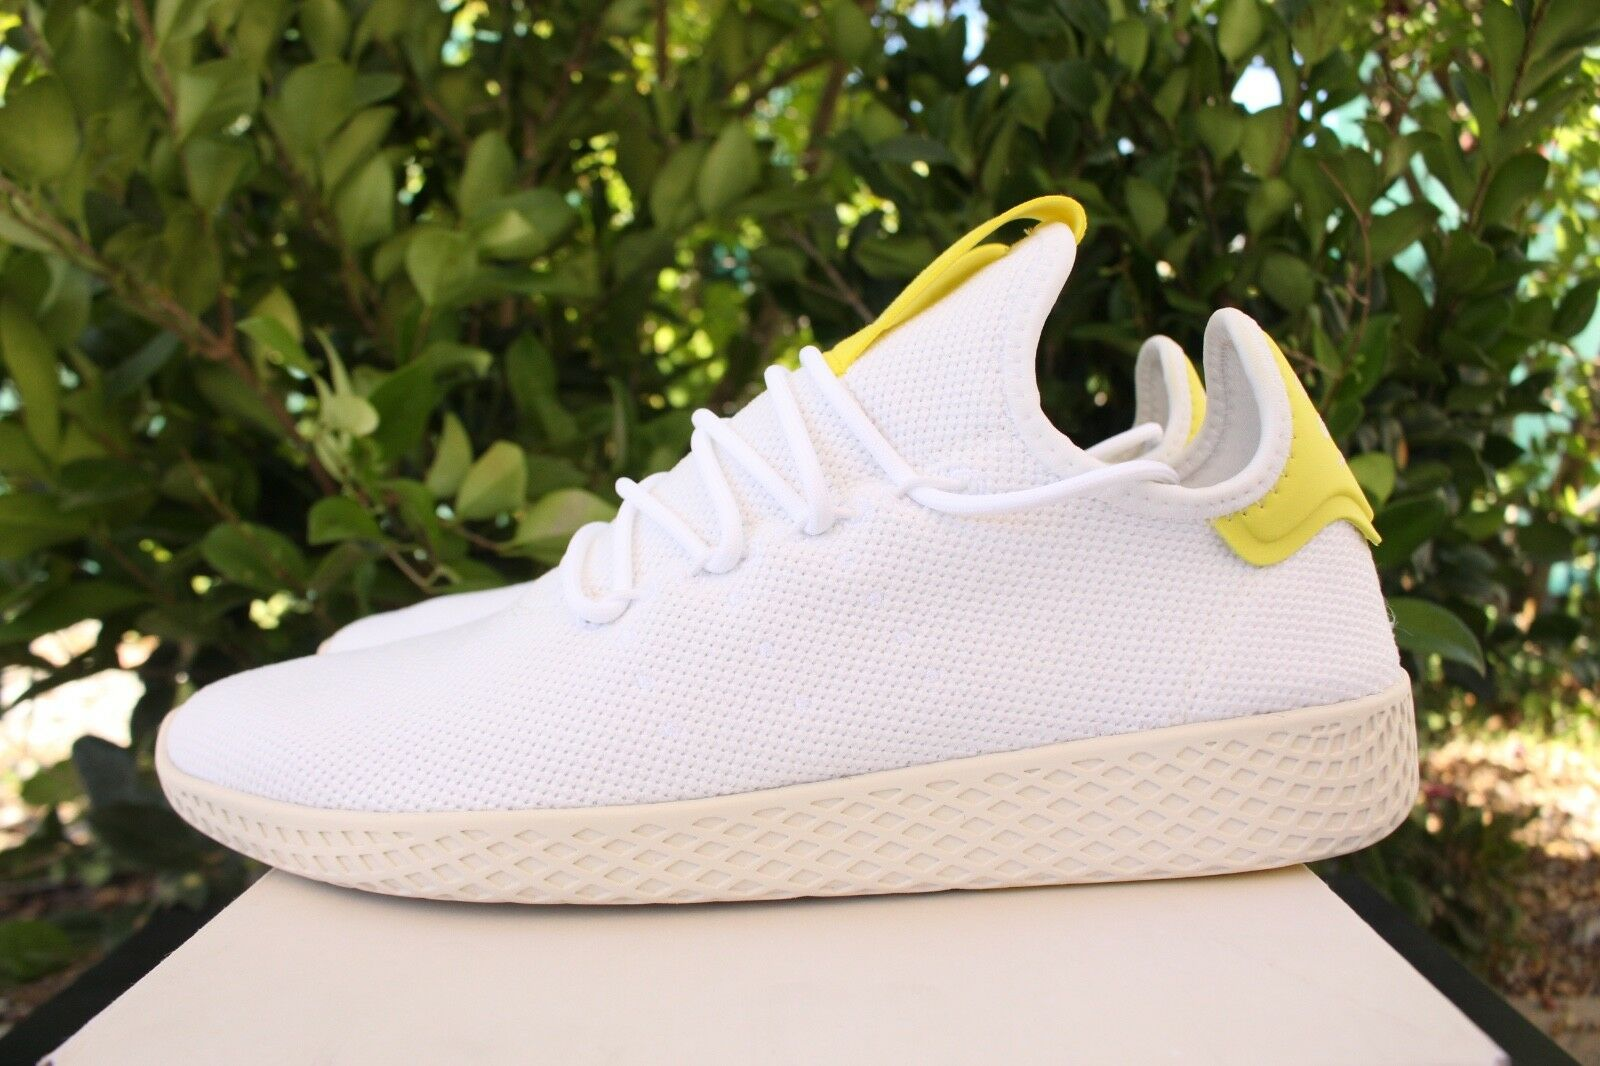 ADIDAS ORIGINALS PHARRELL WILLIAMS TENNIS HU SZ 8 CLOUD Weiß Gelb B41806